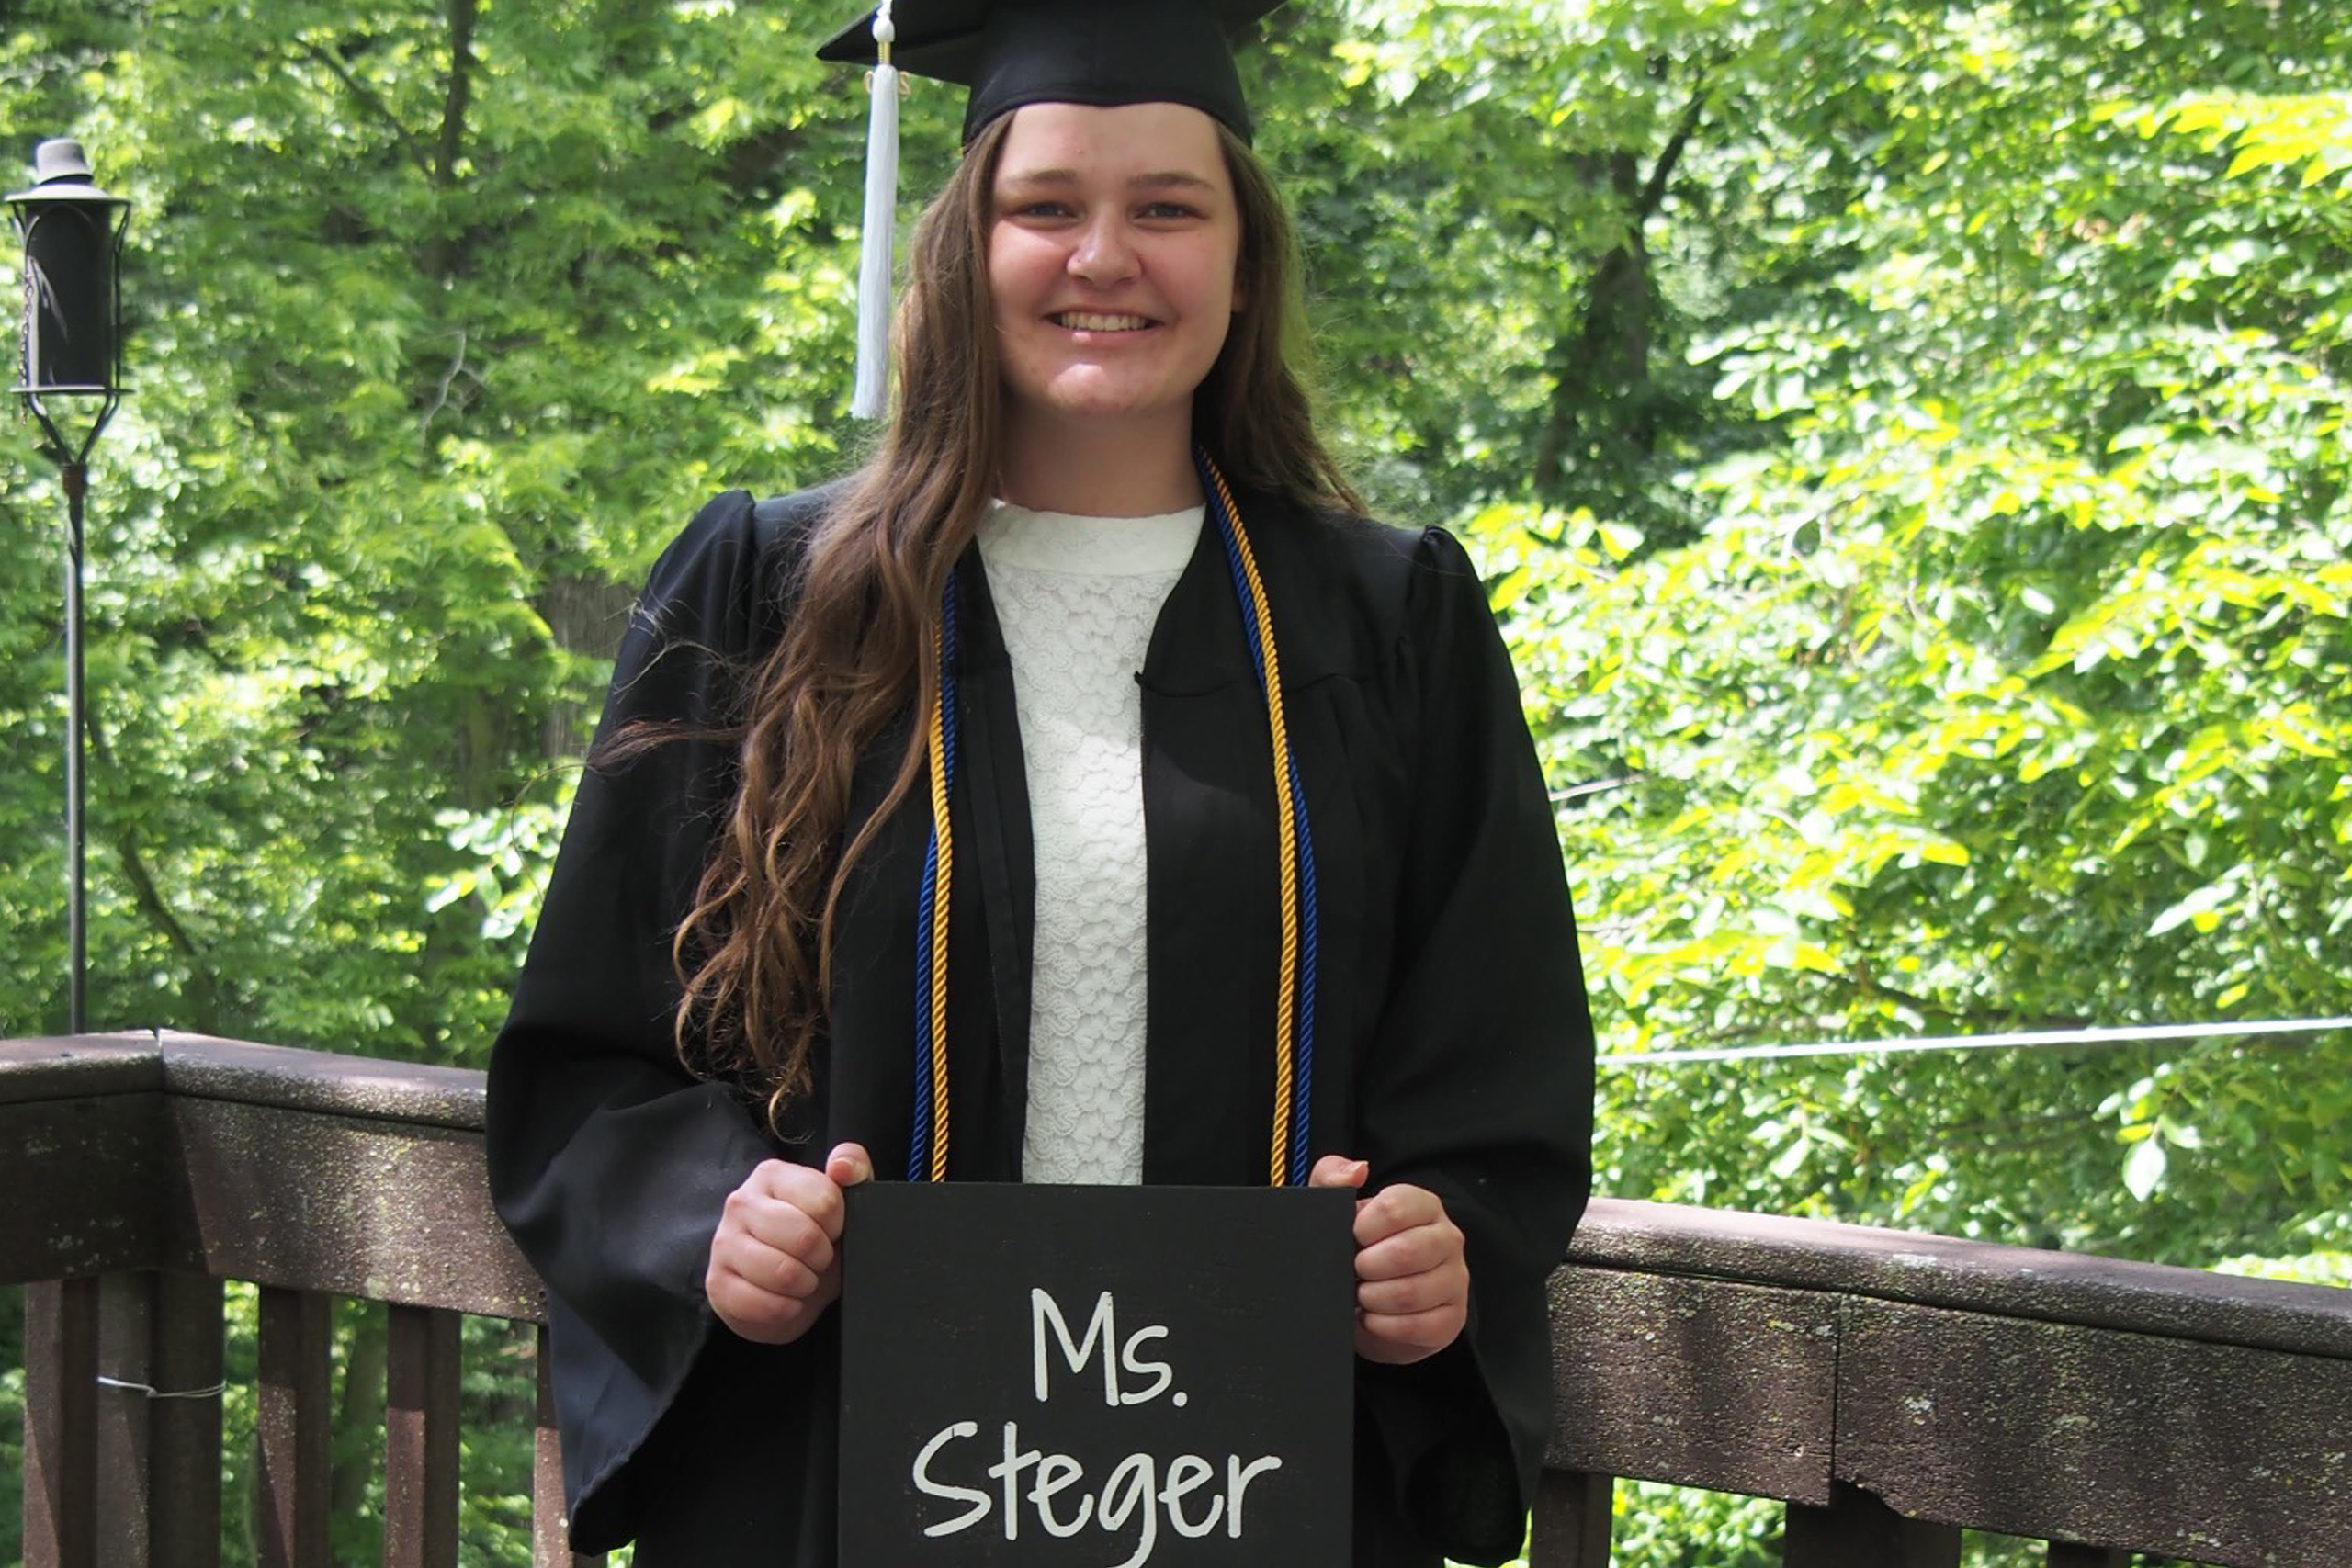 Clarke University education graduate, Lindsey Steger, posing with teaching